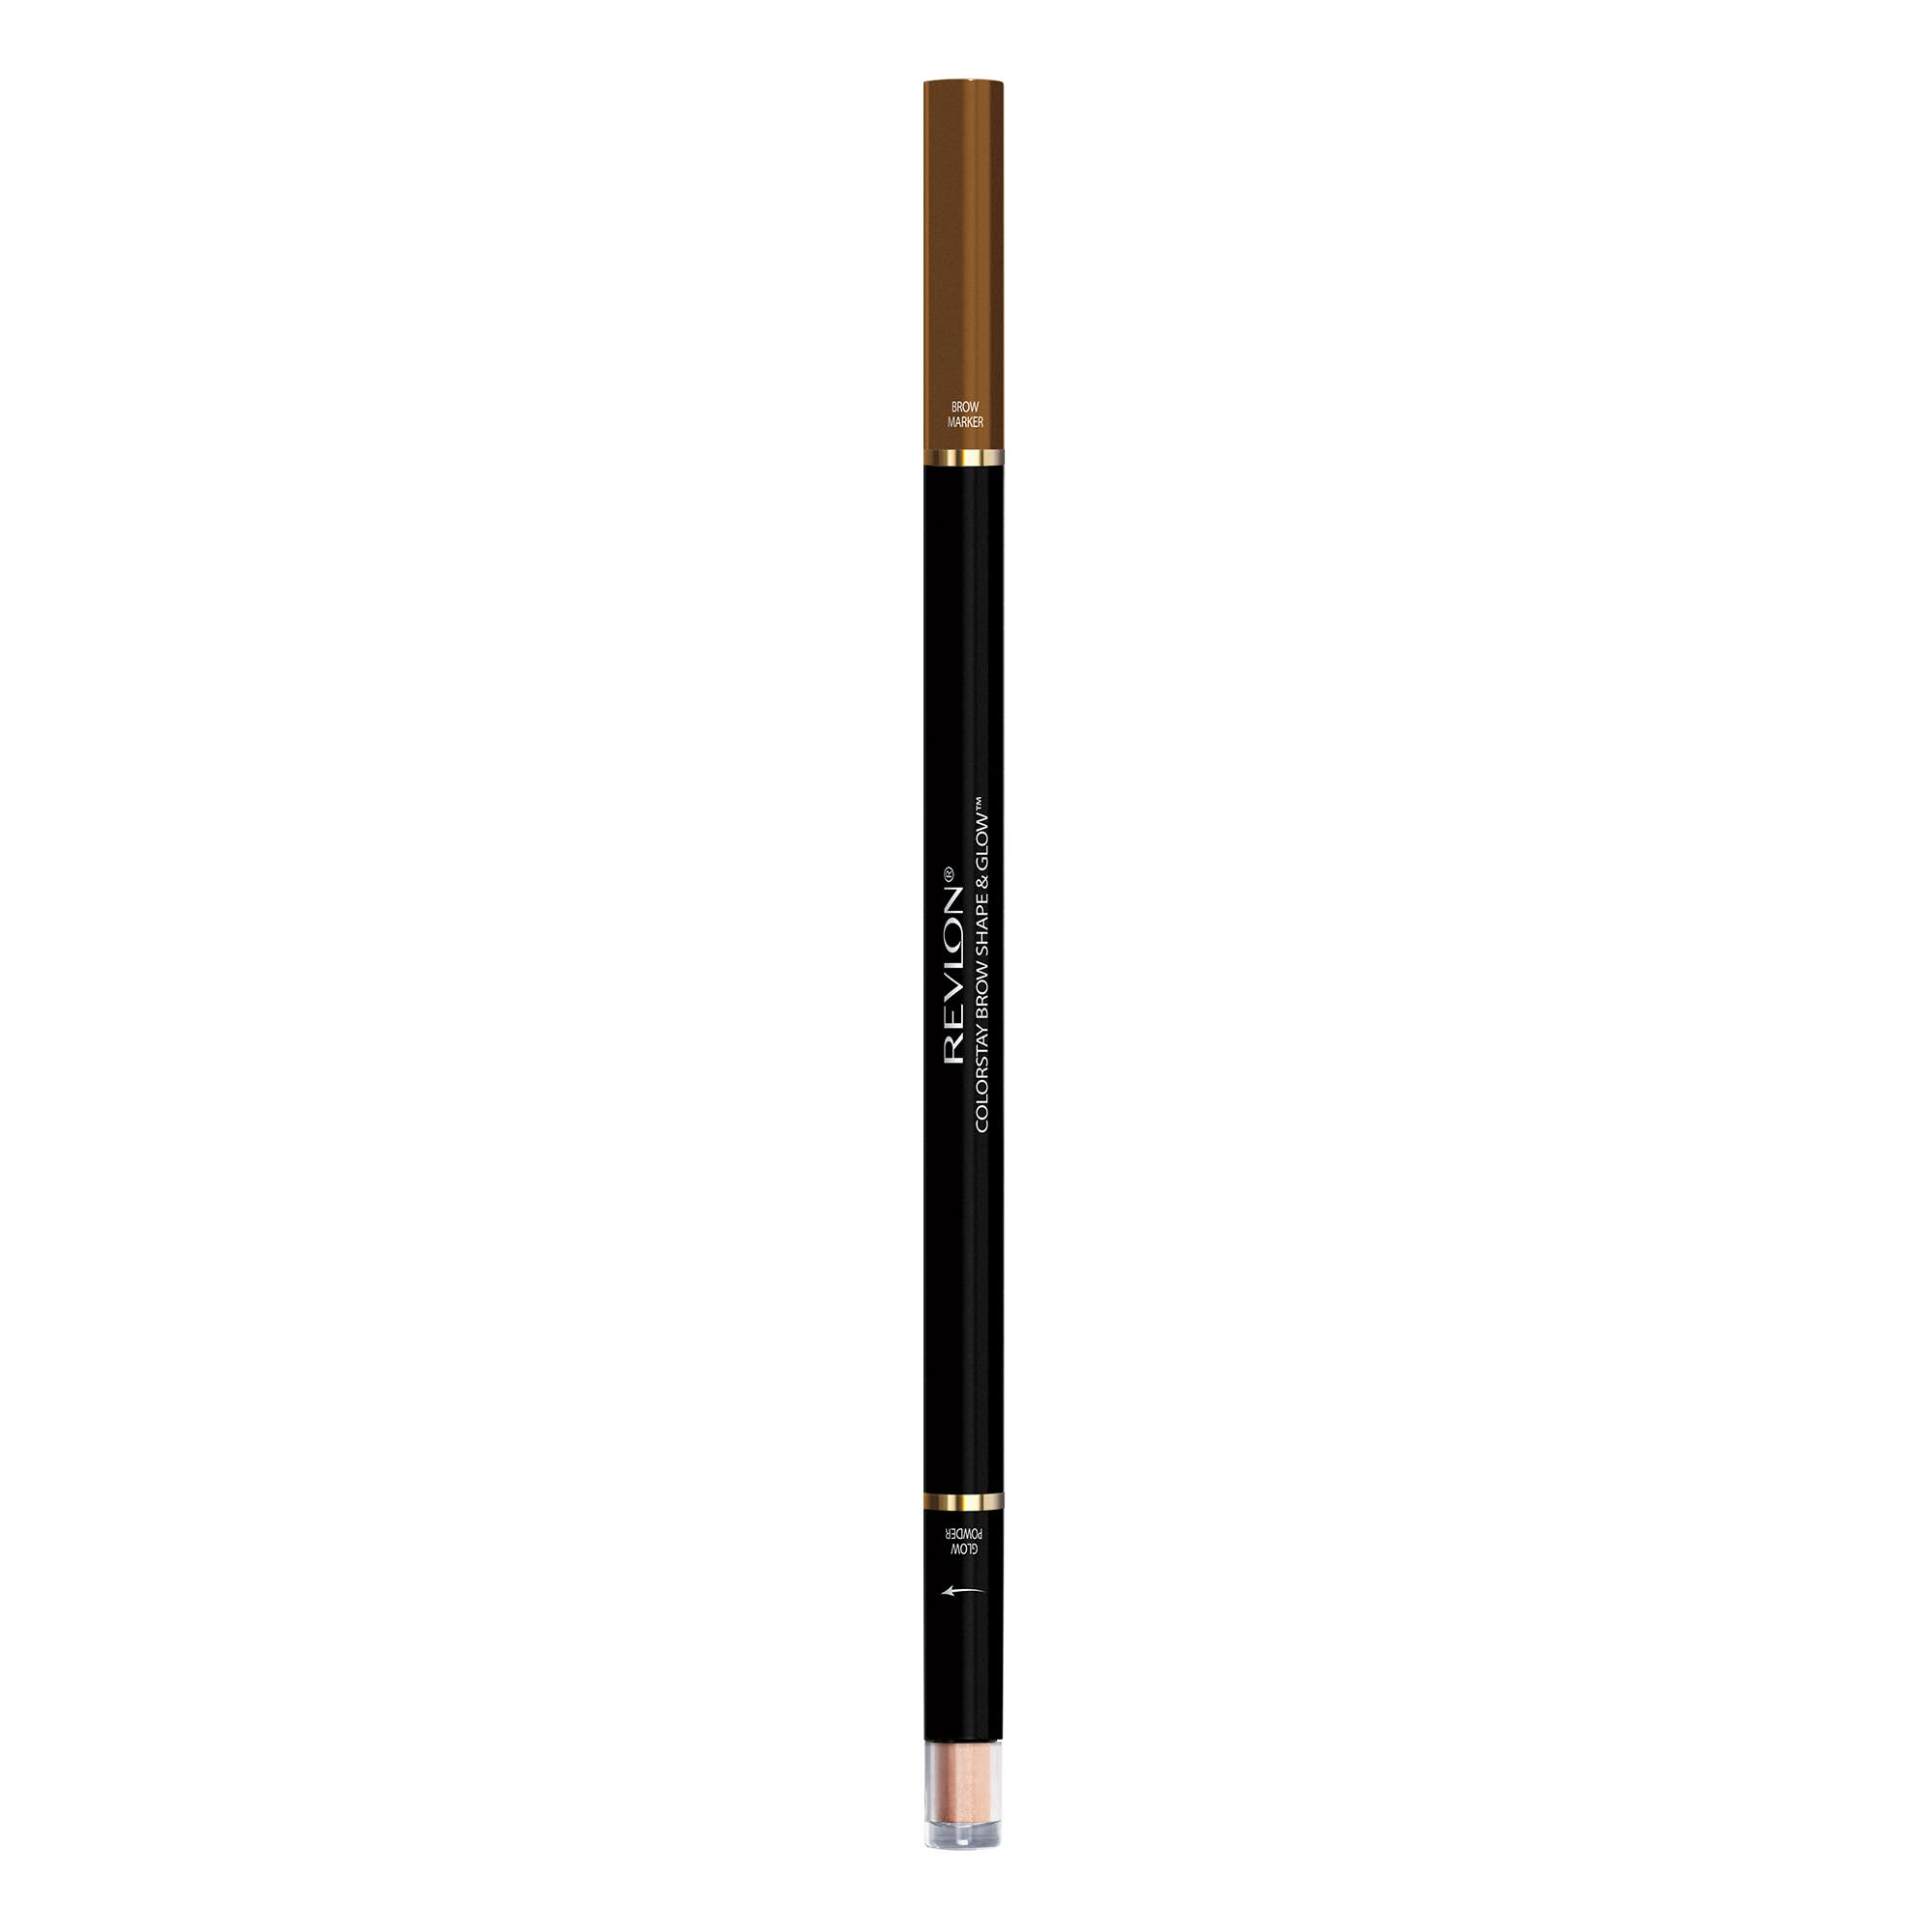 Revlon Colorstay Shape & Glow Eye Brow Marker and Highlighter - Soft Brown, 0.02oz